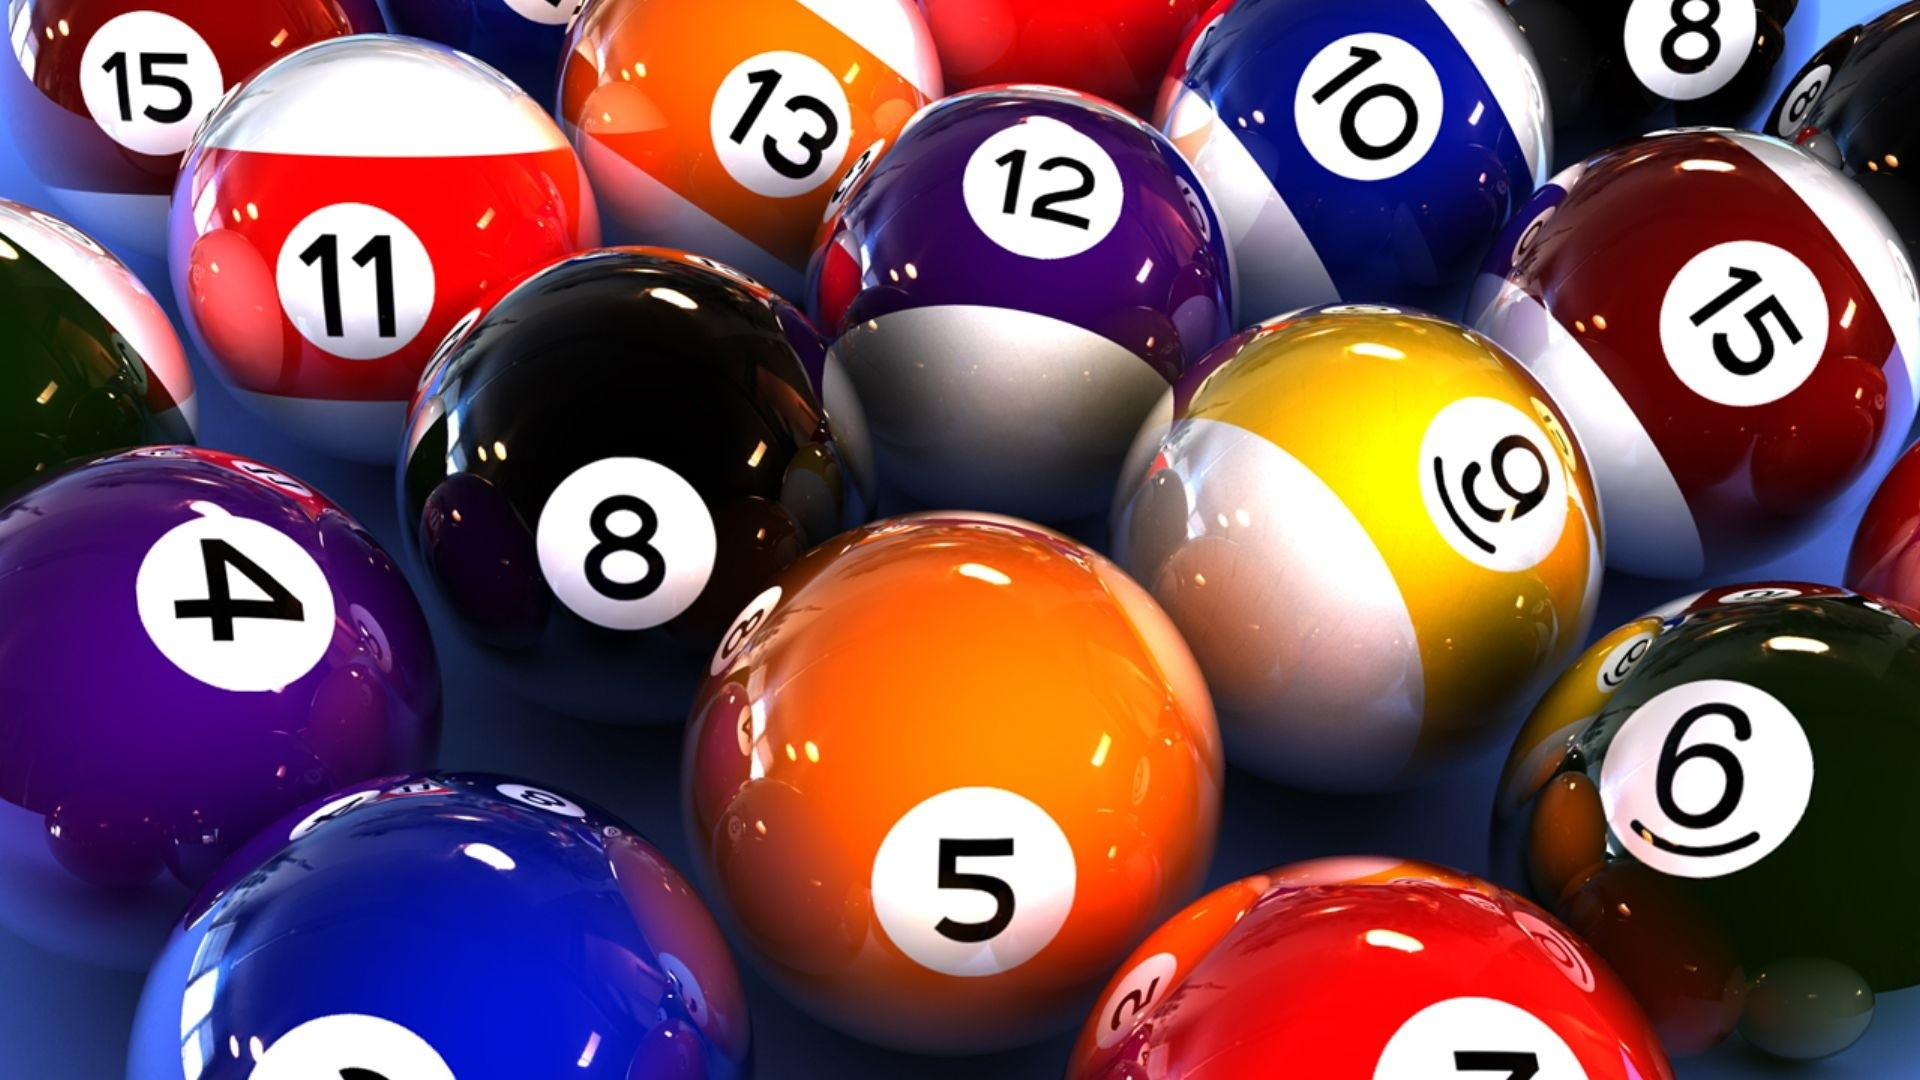 Colorful Balls Billiards Games